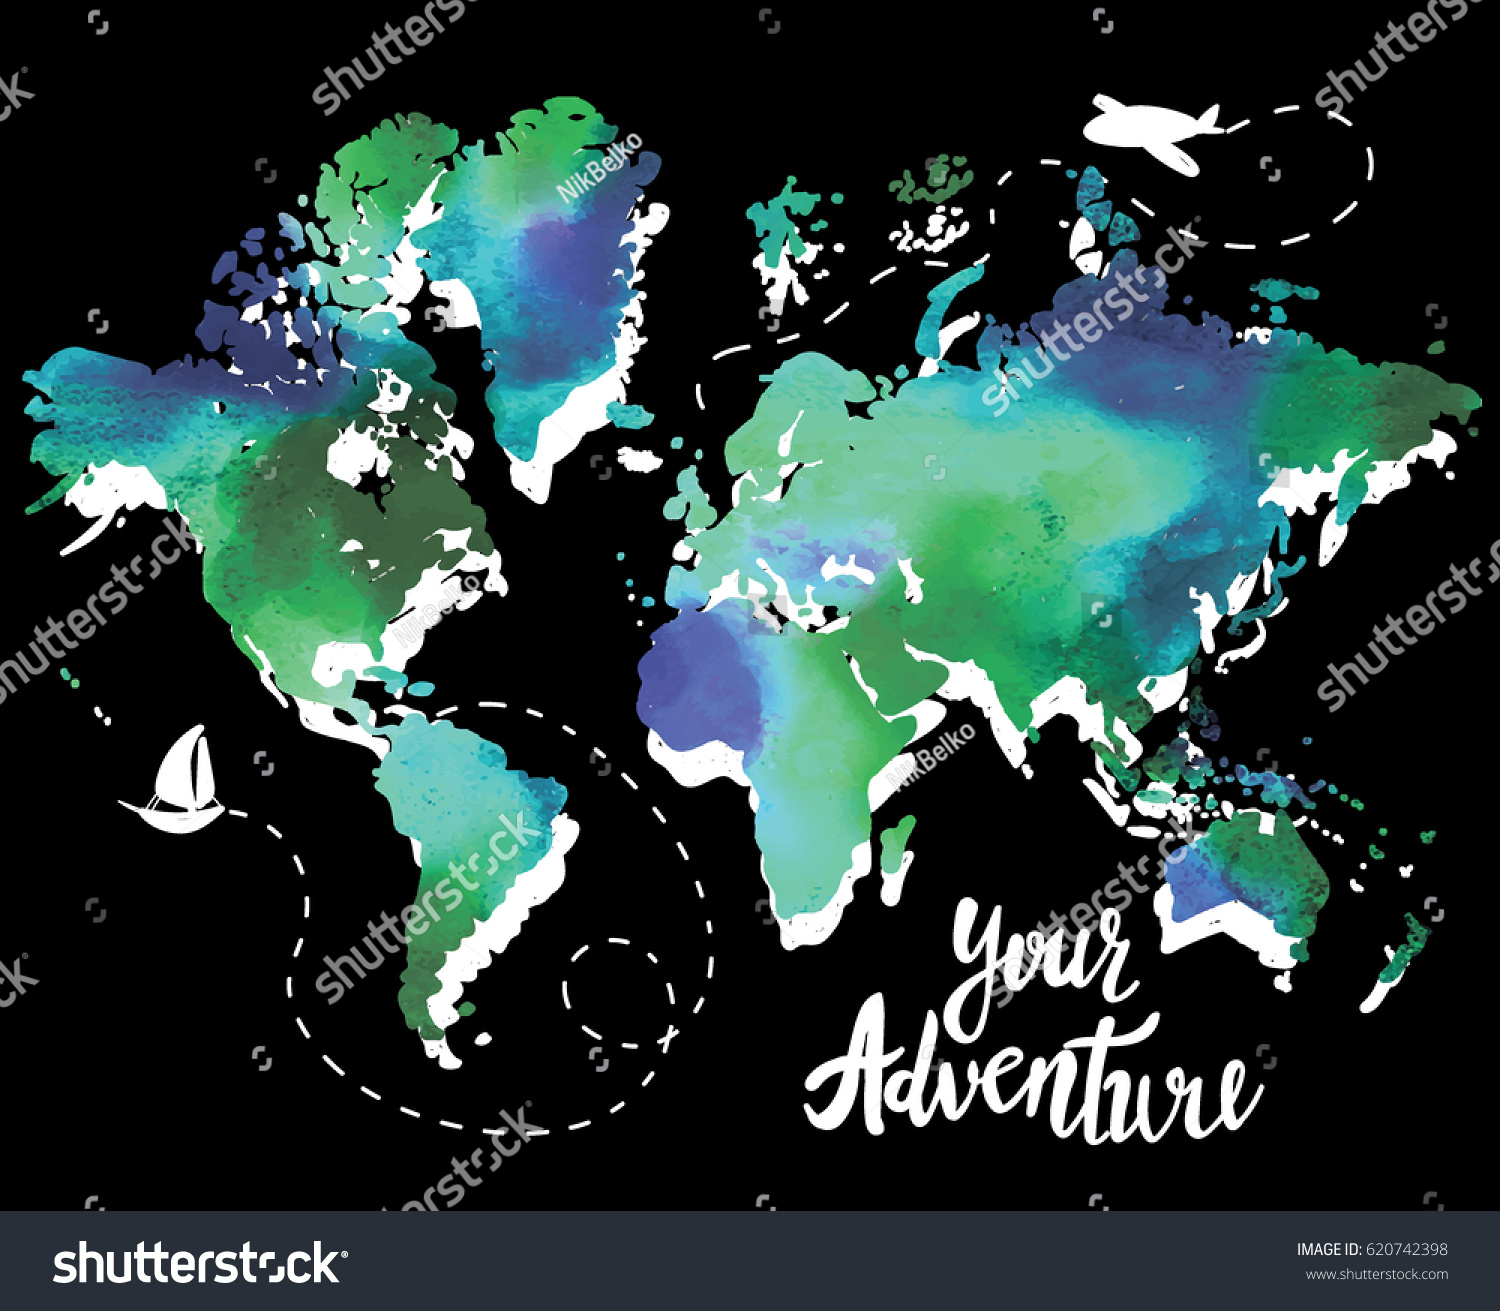 Your adventure drawing by hand childrens stock vector royalty free your adventure drawing by hand childrens drawingight colorful drawing world gumiabroncs Images